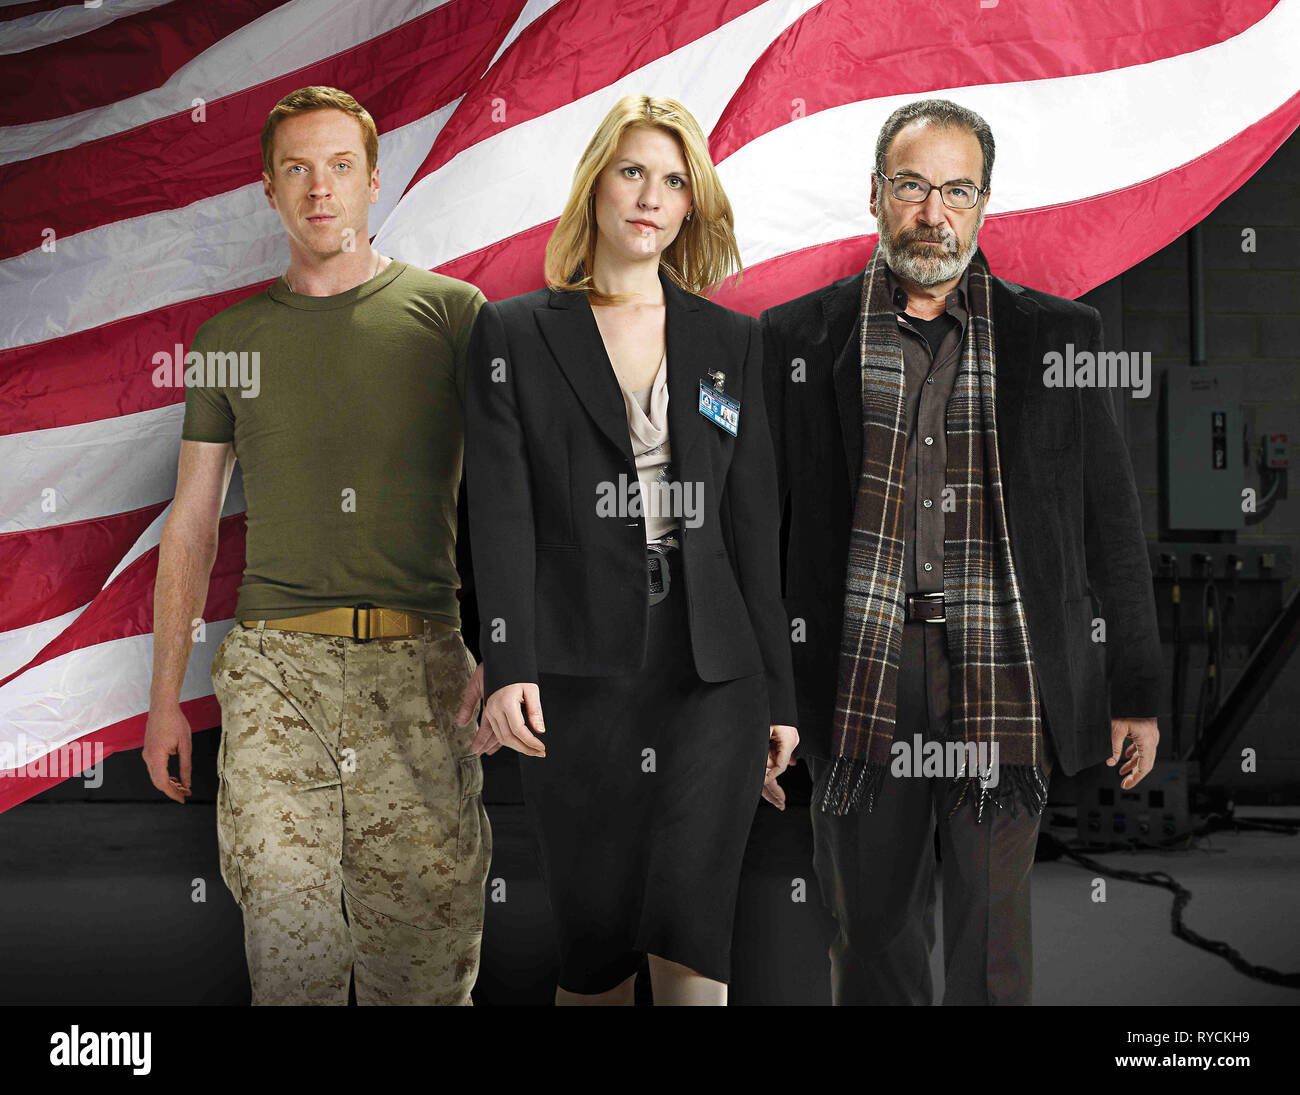 DAMIAN LEWIS, CLAIRE DANES, MANDY PATINKIN, HOMELAND, 2011 - Stock Image